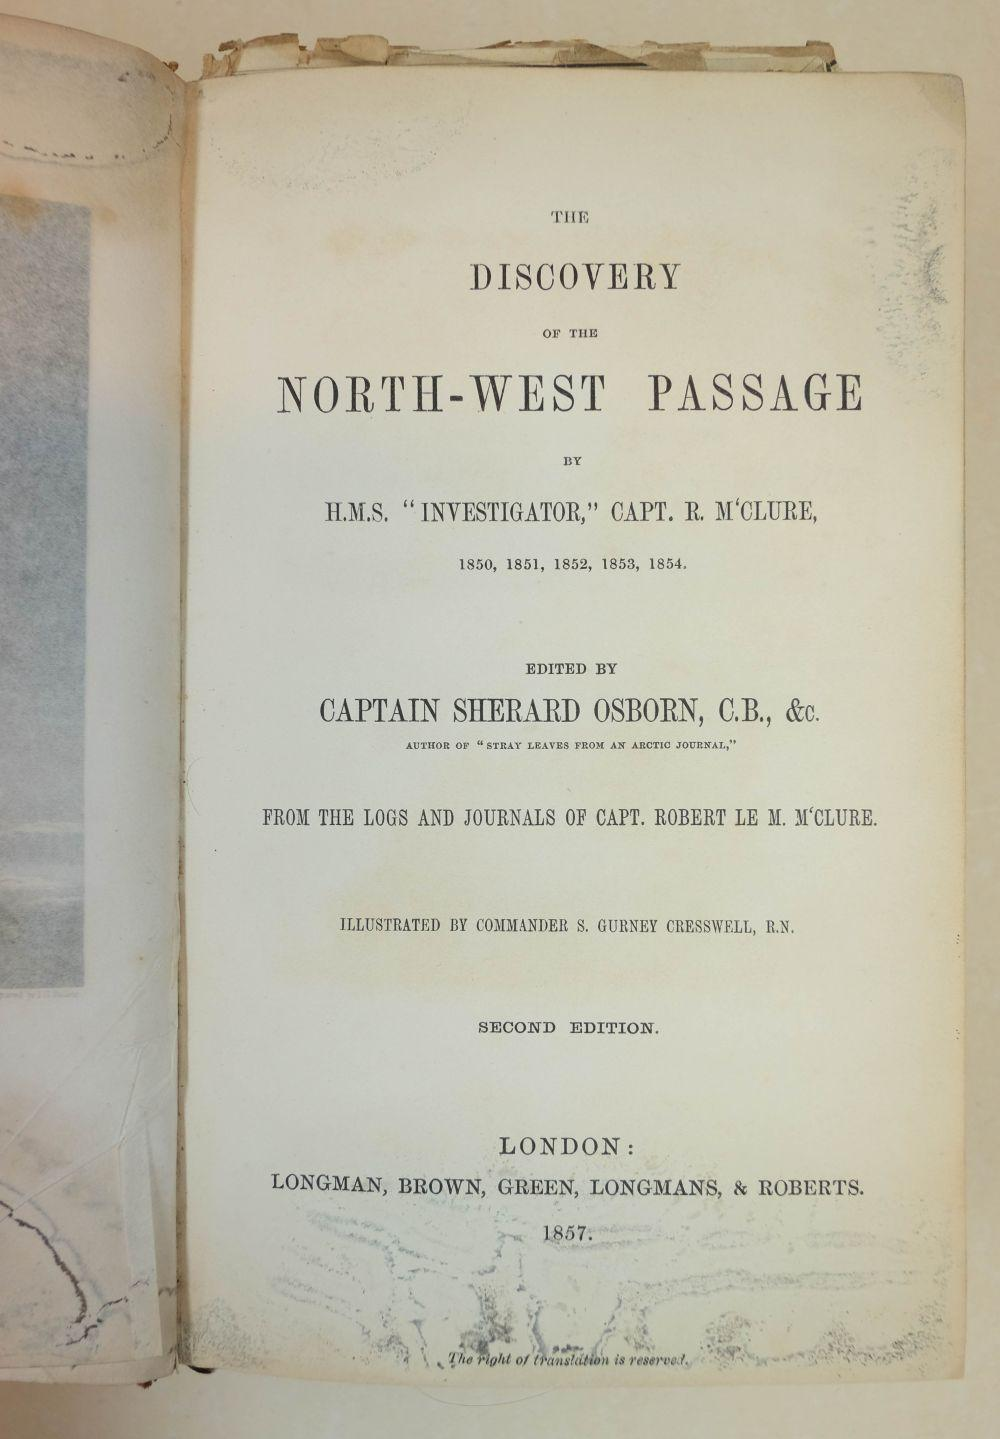 McClure (Robert). The Discovery of the North West Passage, 2nd edition, 1857